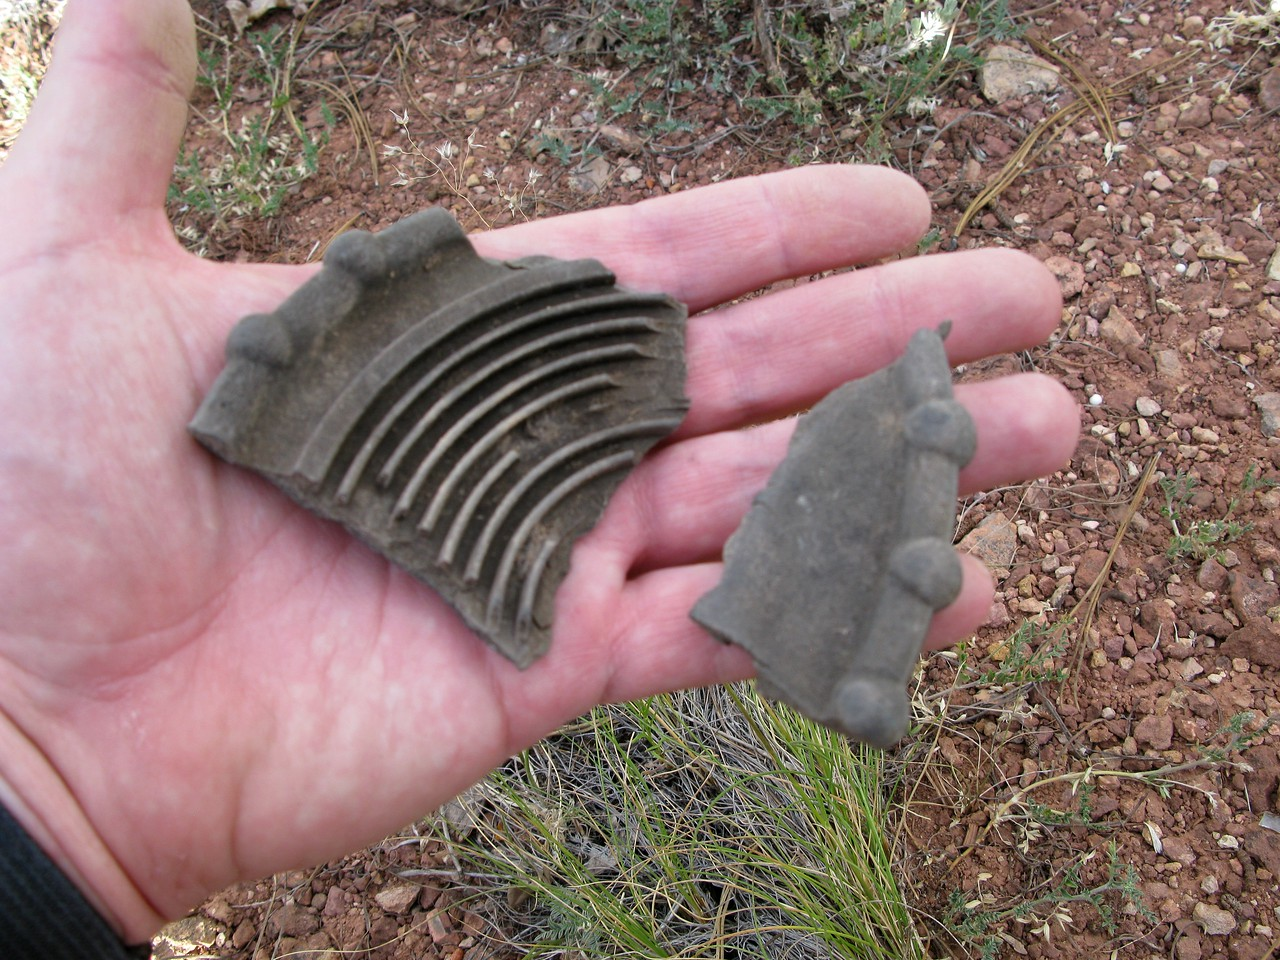 These fragments of plastic were once part of the flight control trim wheels that operated both elevator and rudder trim.